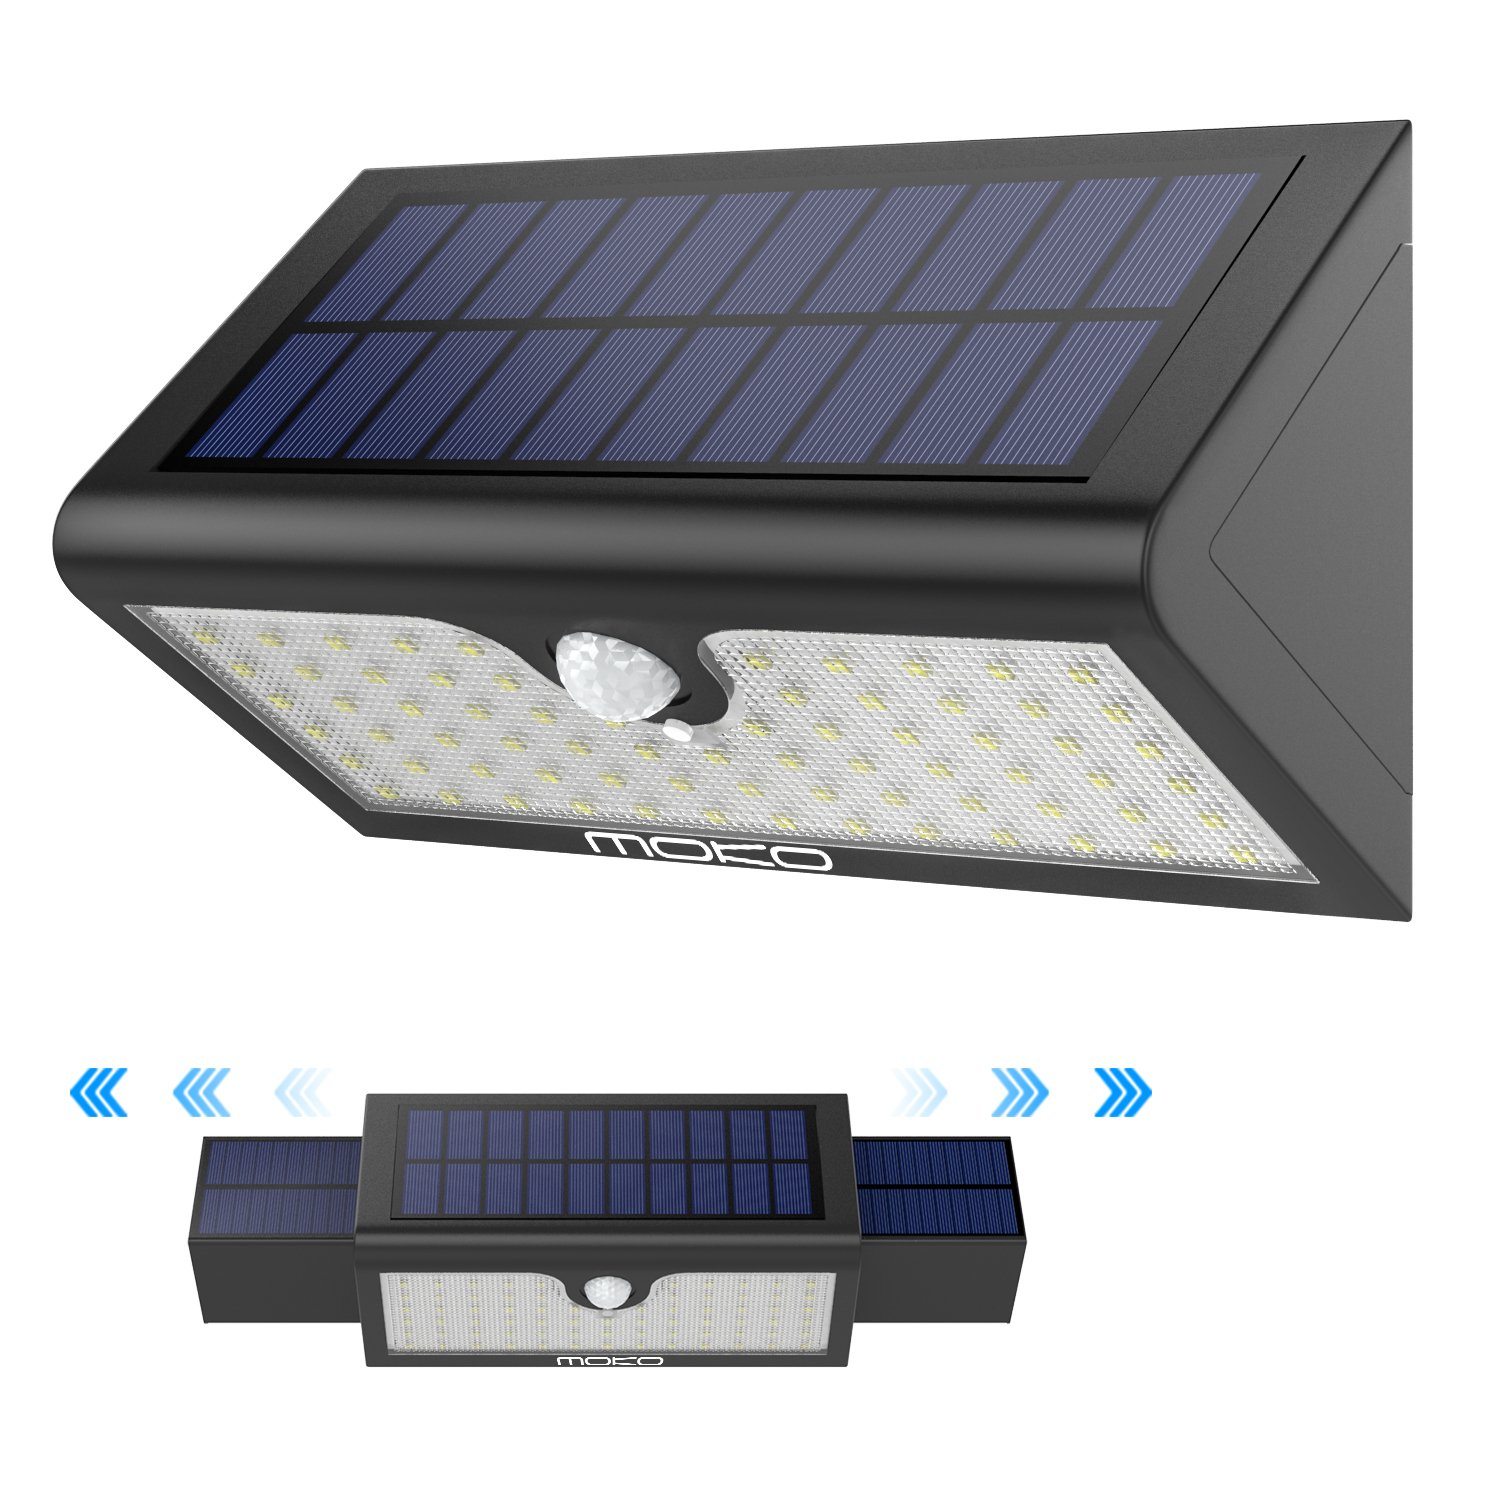 Solar Lights, MoKo Super Bright 71 LED Motion Sensor Solar Powered Lights, Outdoor Waterproof Wall Path Light Home Security Lamp with Wide Angle Illumination for Driveway, Yard, Garden, Patio - BLACK